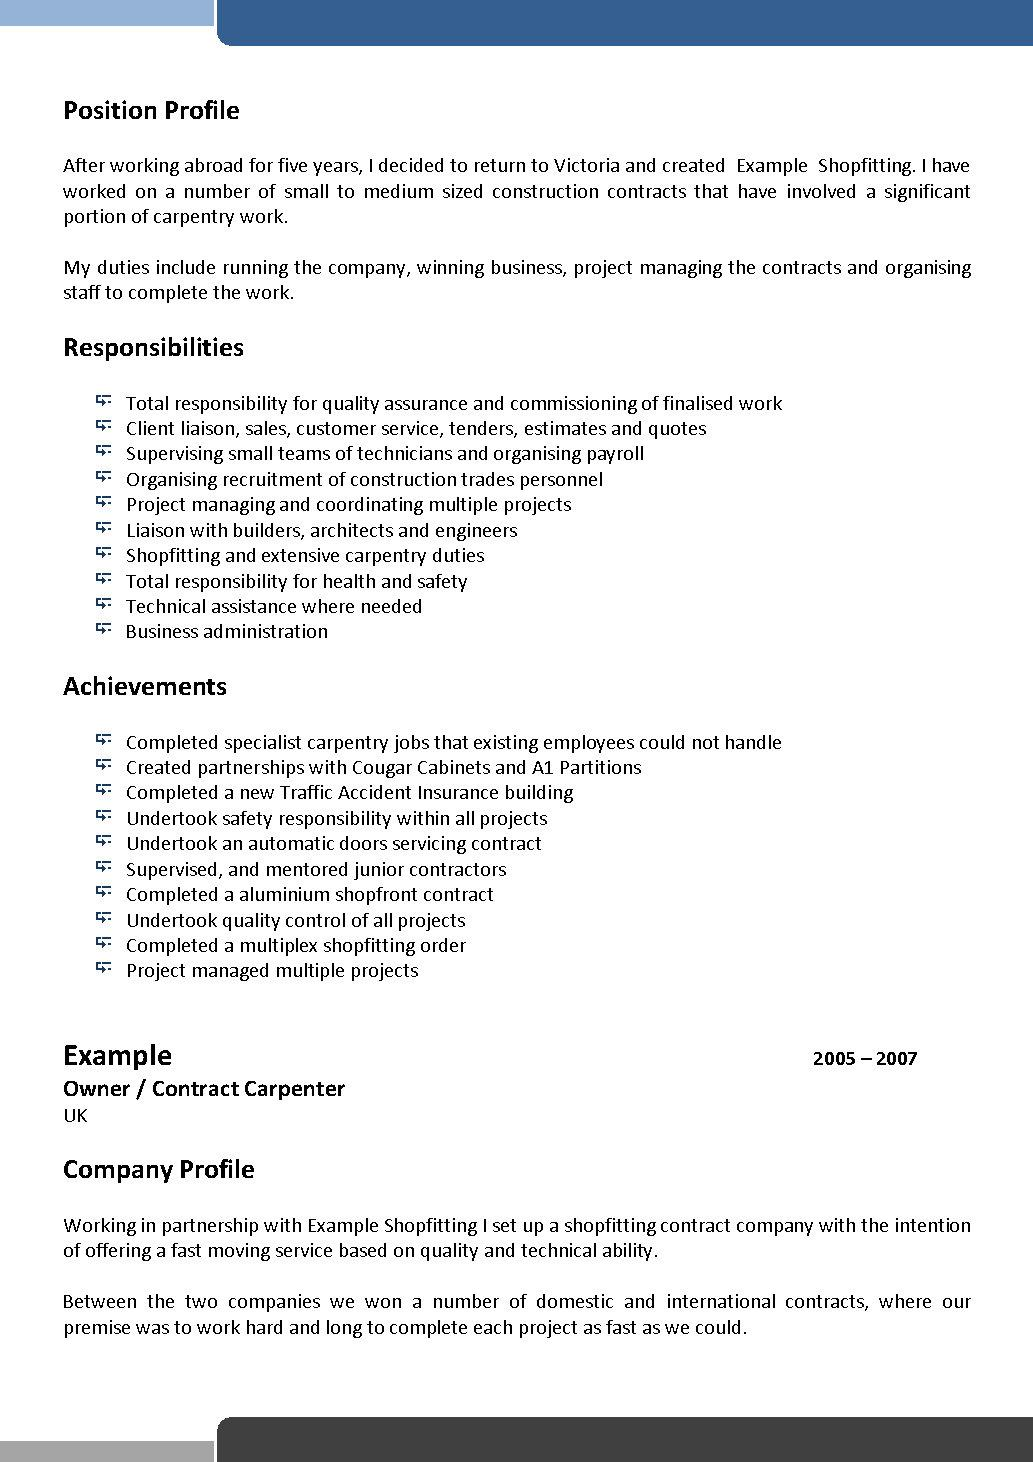 Resume Writing Service Australia We Can Help With Professional Resume Writing Resume